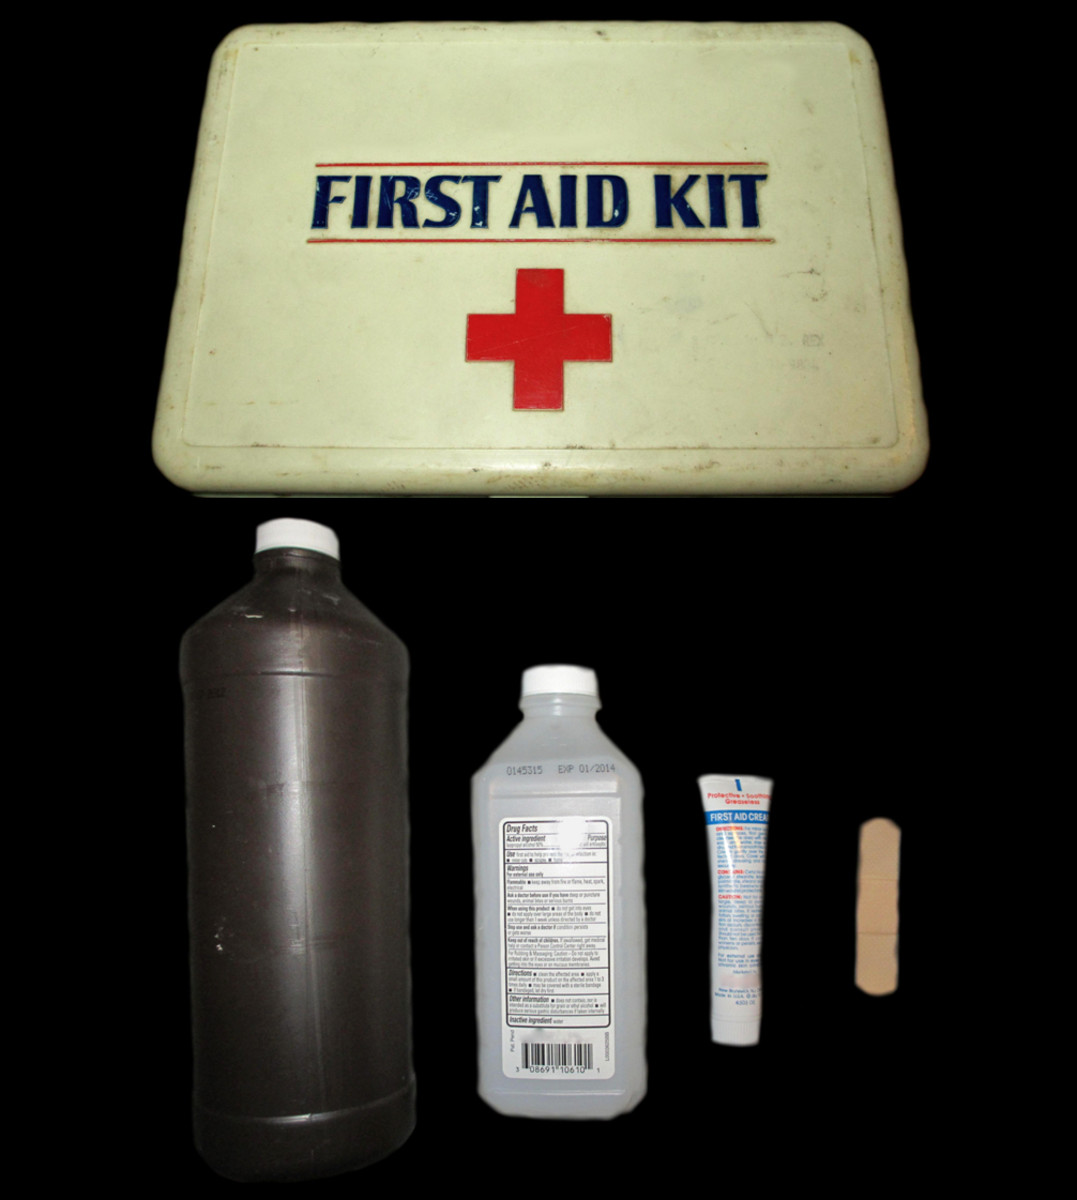 An example of some effective first aid techniques for snakebite: hydrogen peroxide and isopropyl alcohol to cleanse the bite site, antibiotic ointment to smear on the wound, and a bandage to cover/protect the puncture marks.